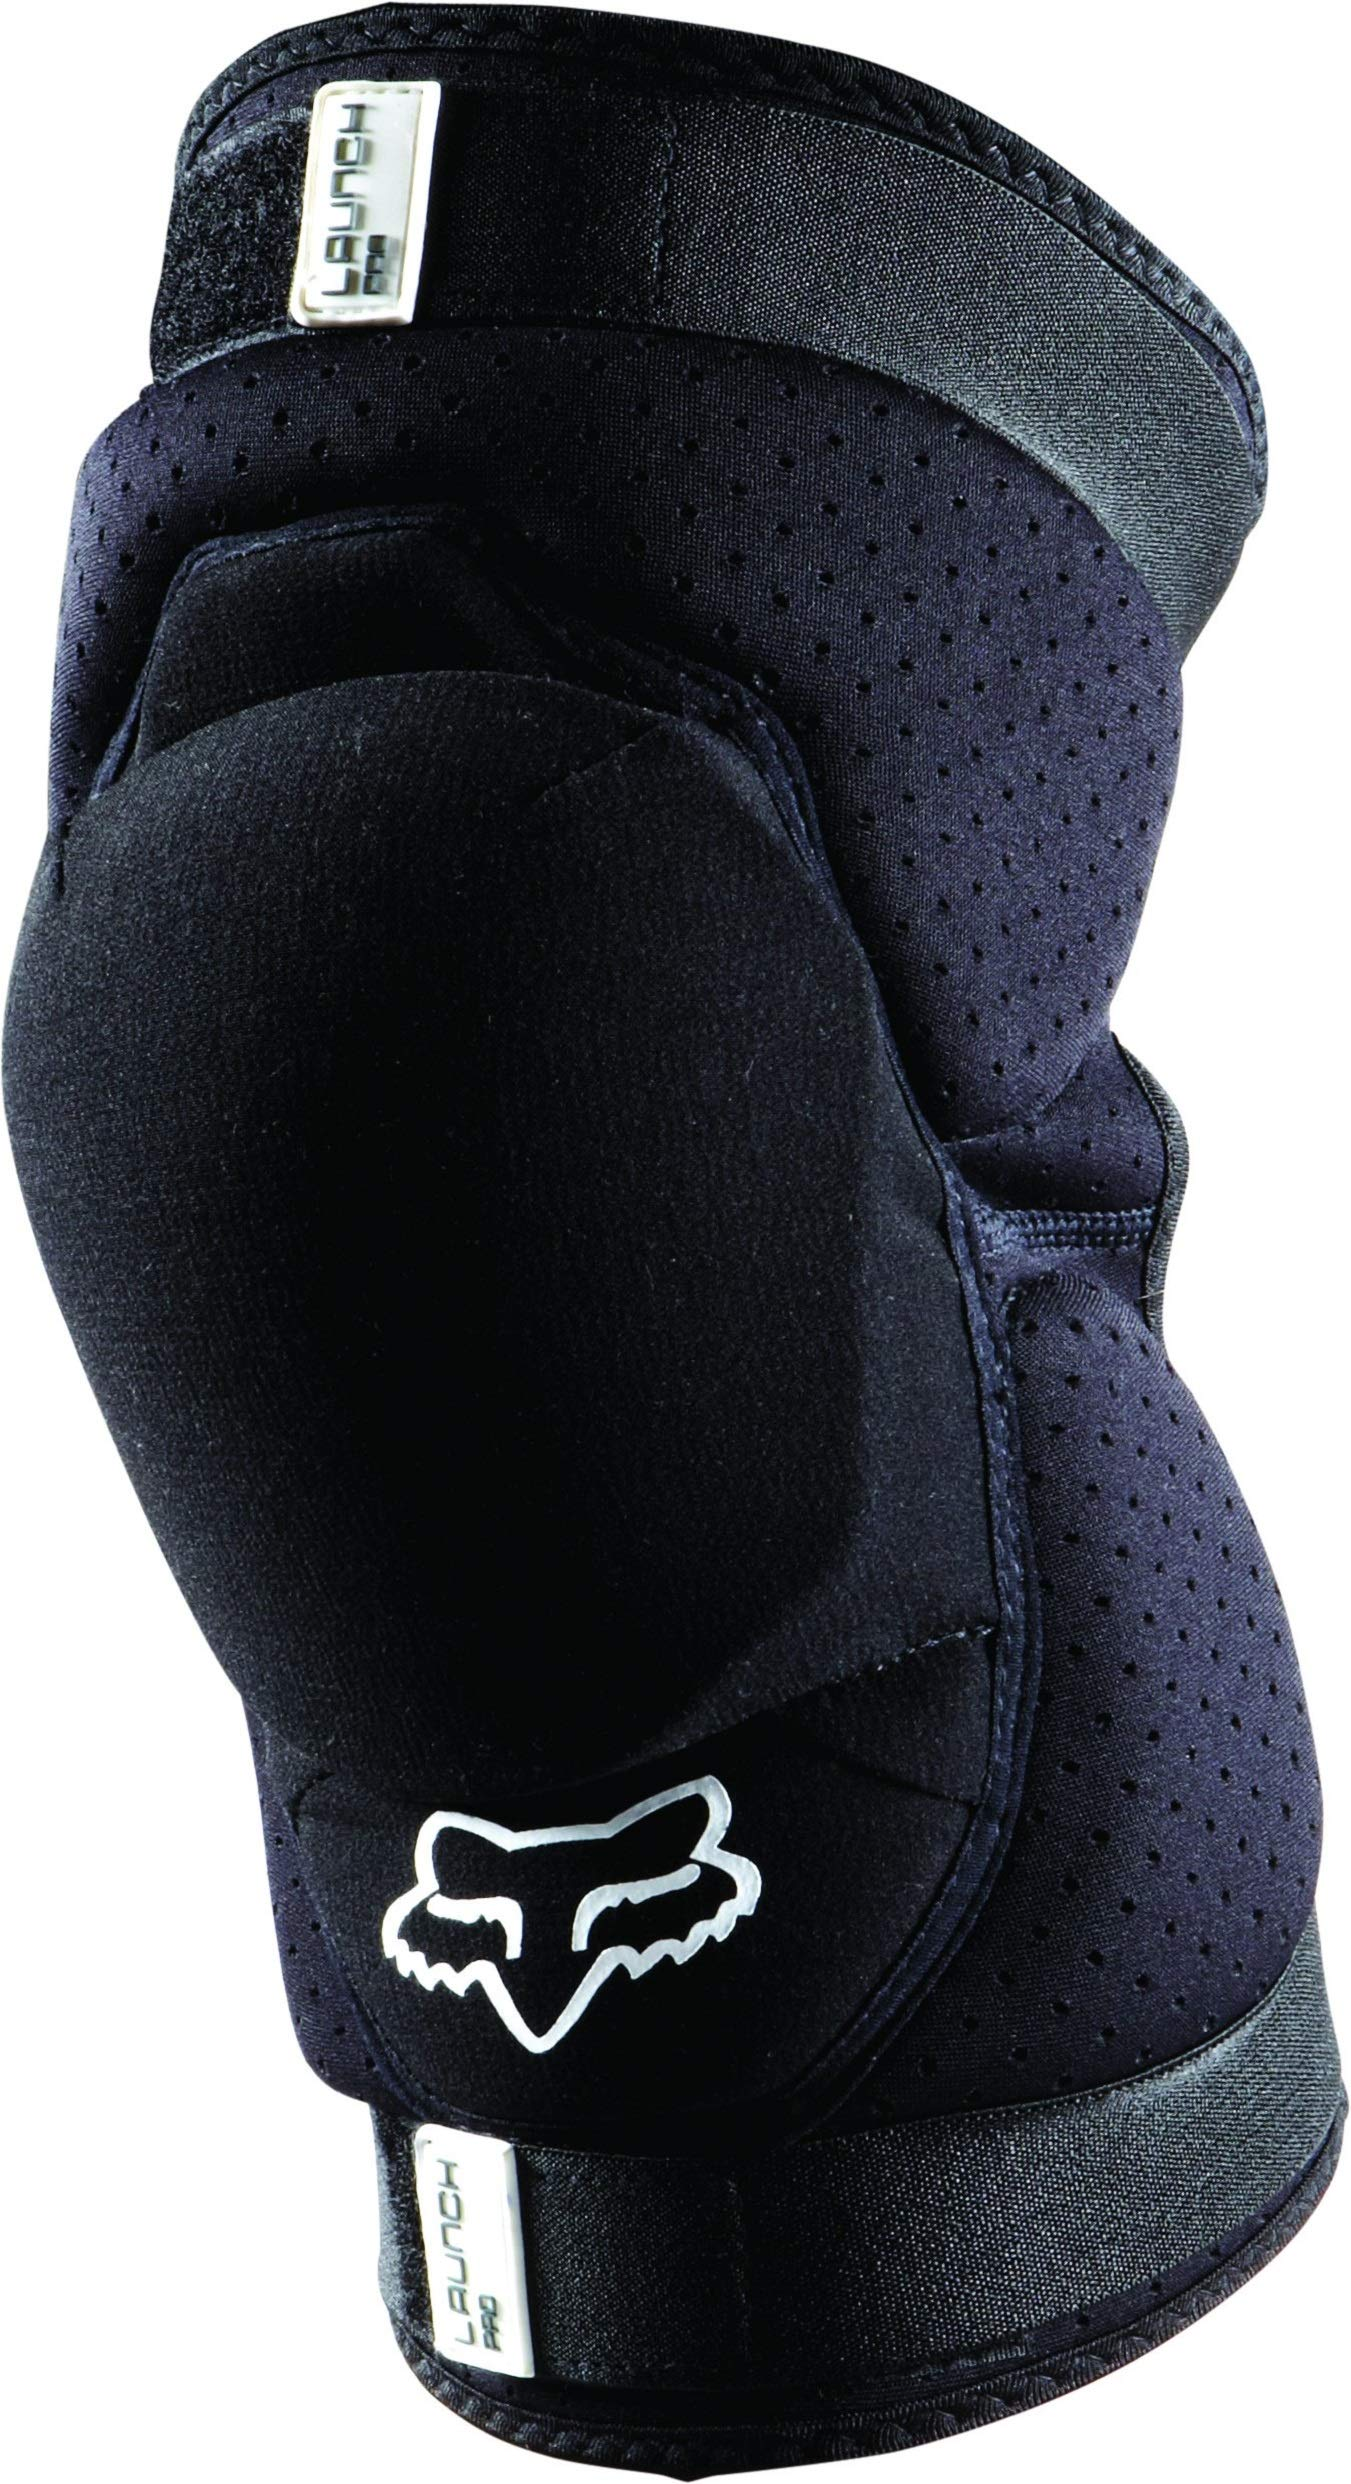 Fox Racing Launch Pro MTB Knee Guard (Black, Large/X-Large)